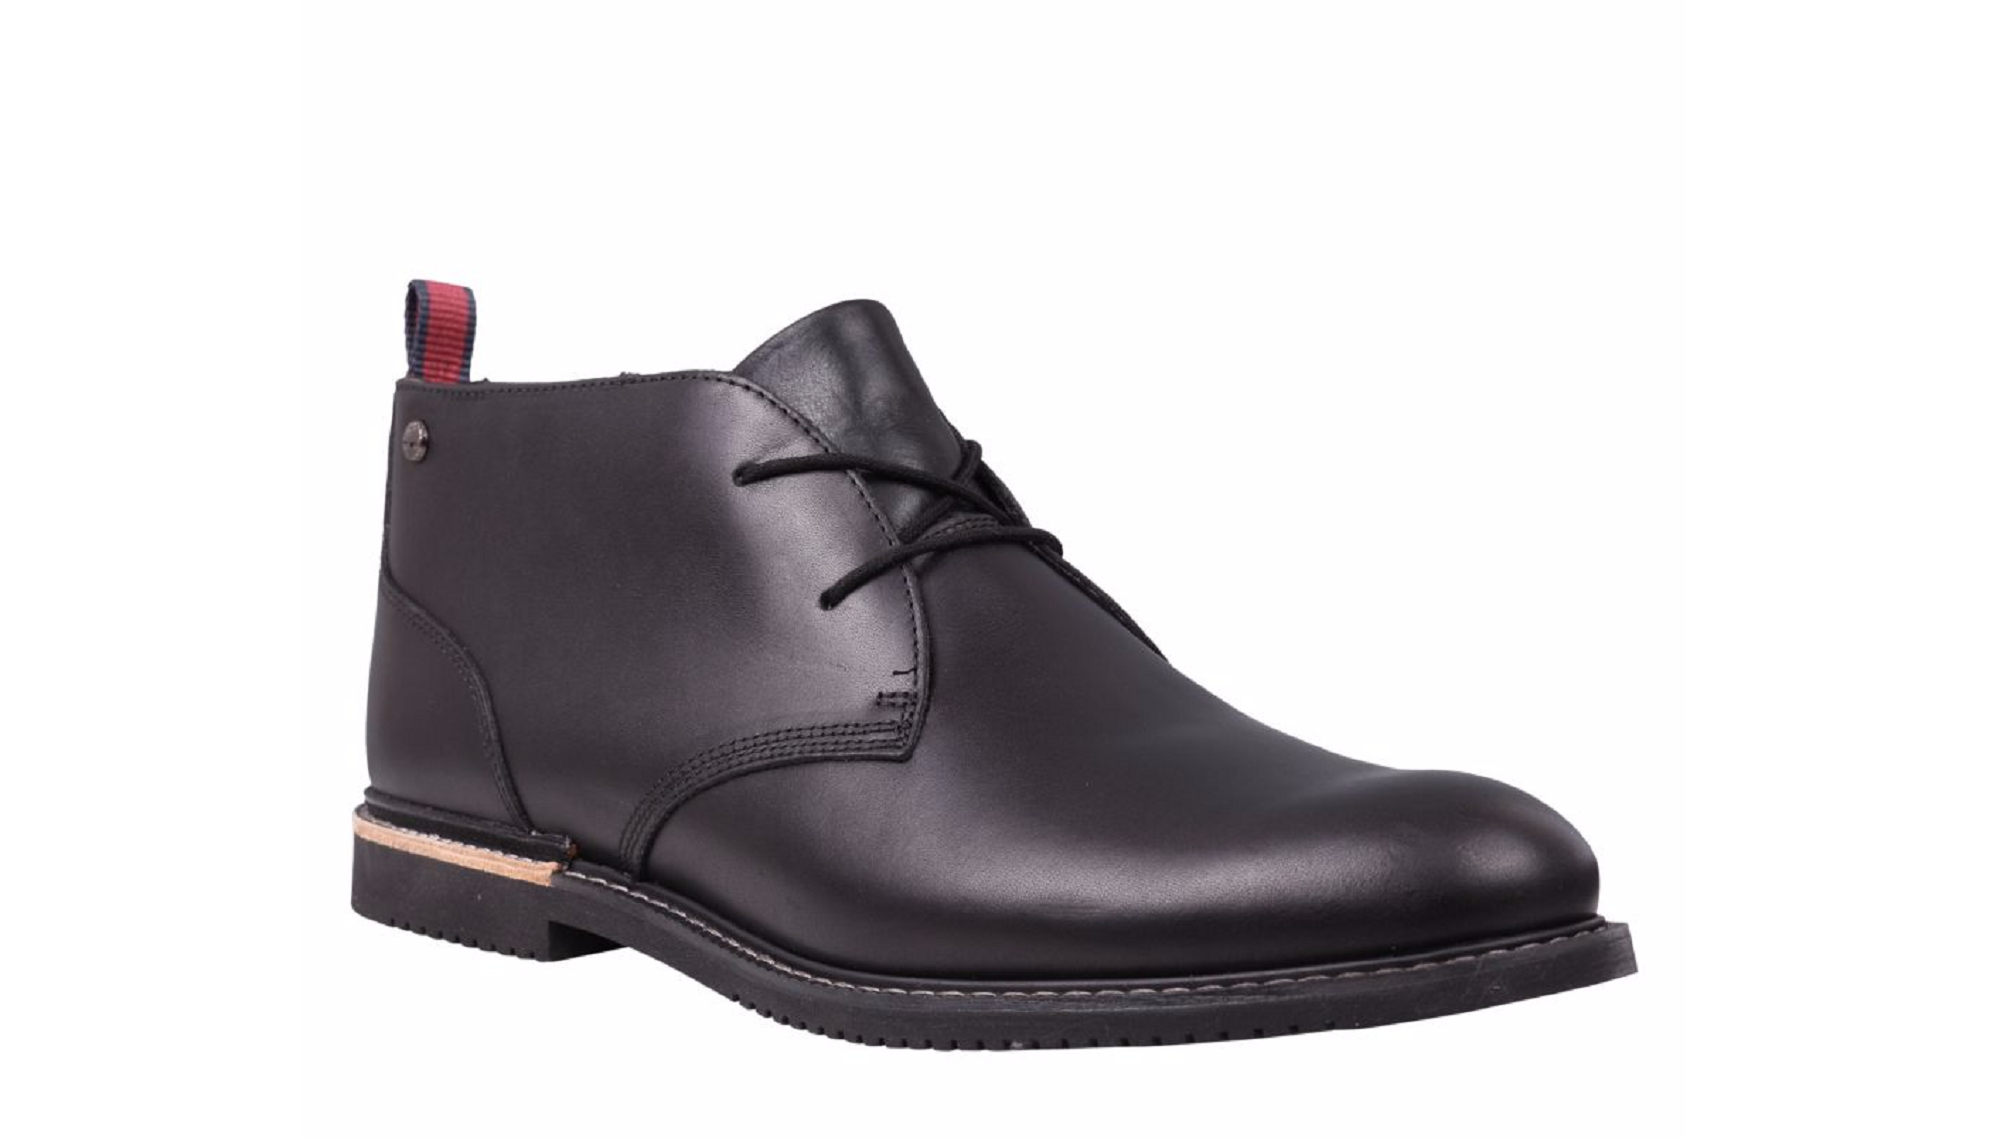 Mens Earthkeepers Brook Park Chukka Boots